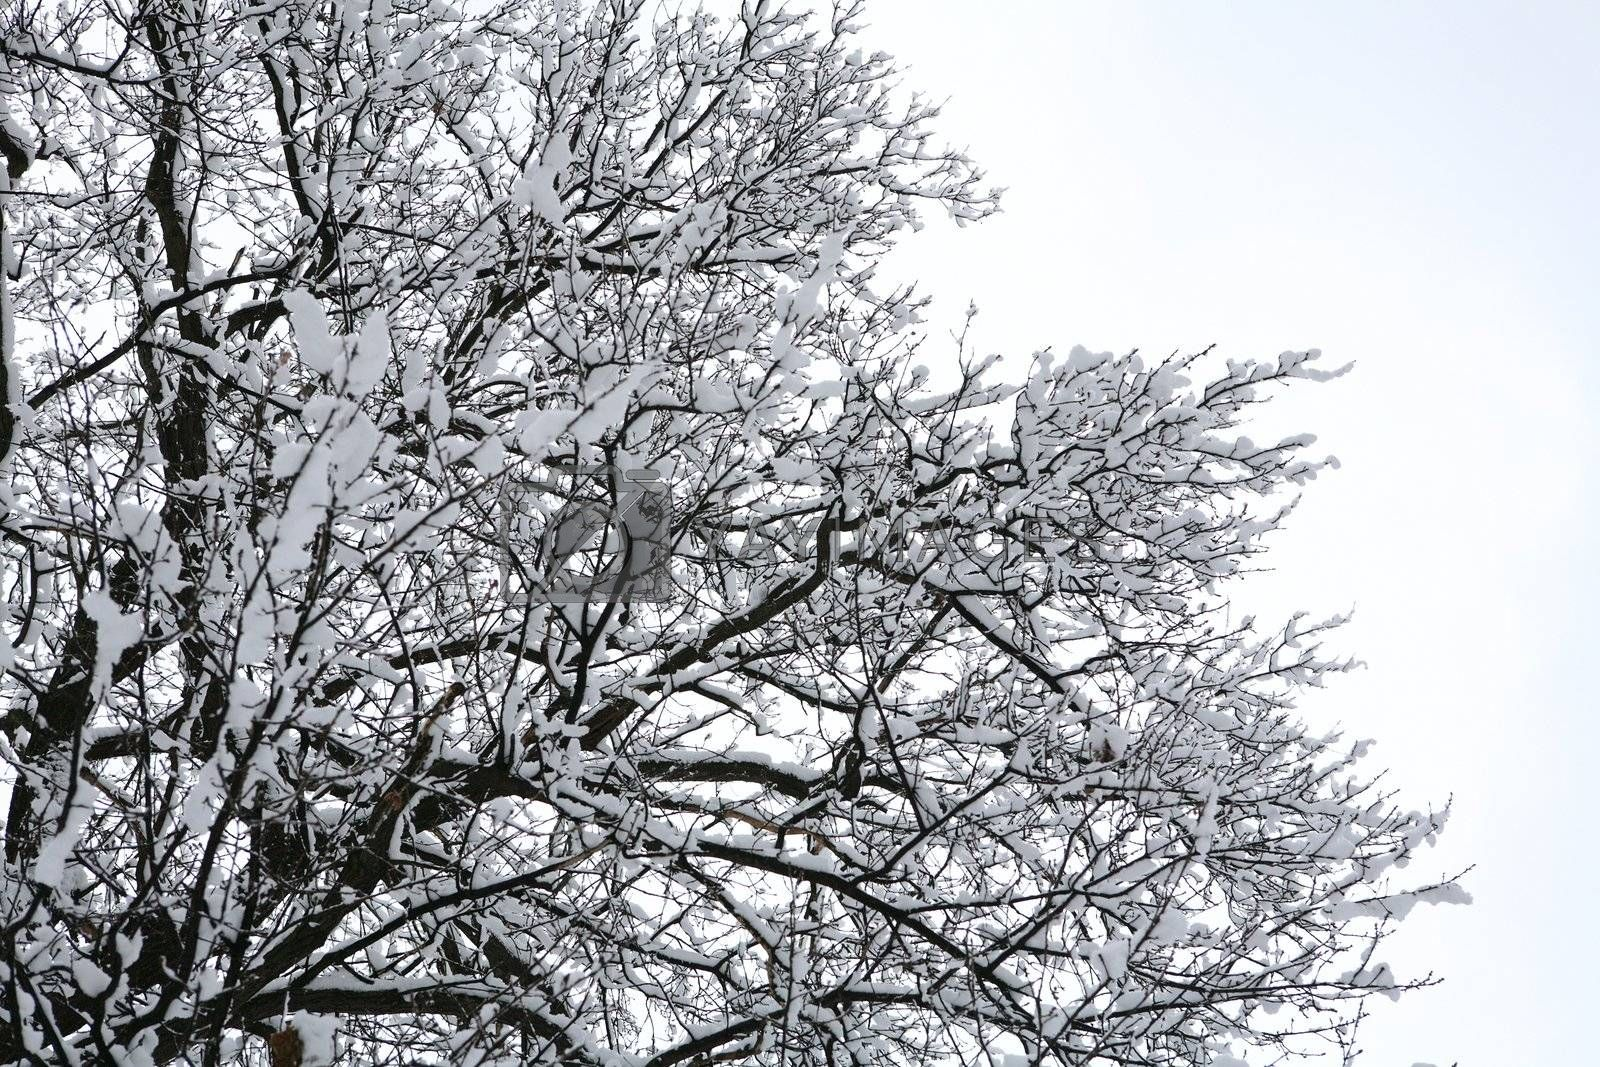 Royalty free image of tree covered by snow by Astroid